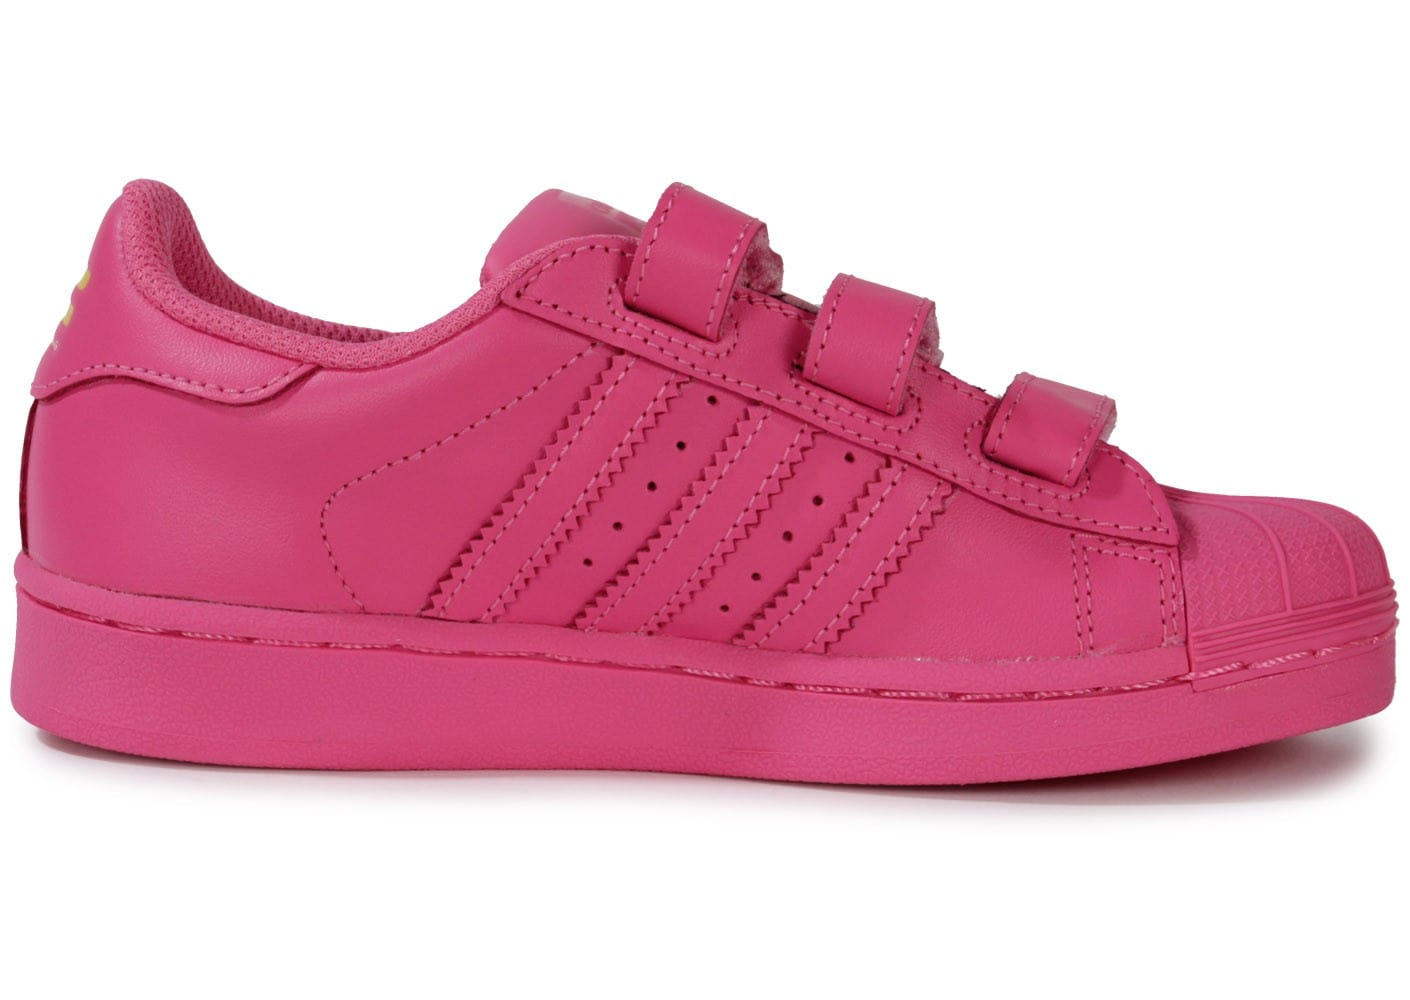 magasin en ligne 111ef 991e0 Adidas Superstar Rose Scratch specialiste-du-couple.fr